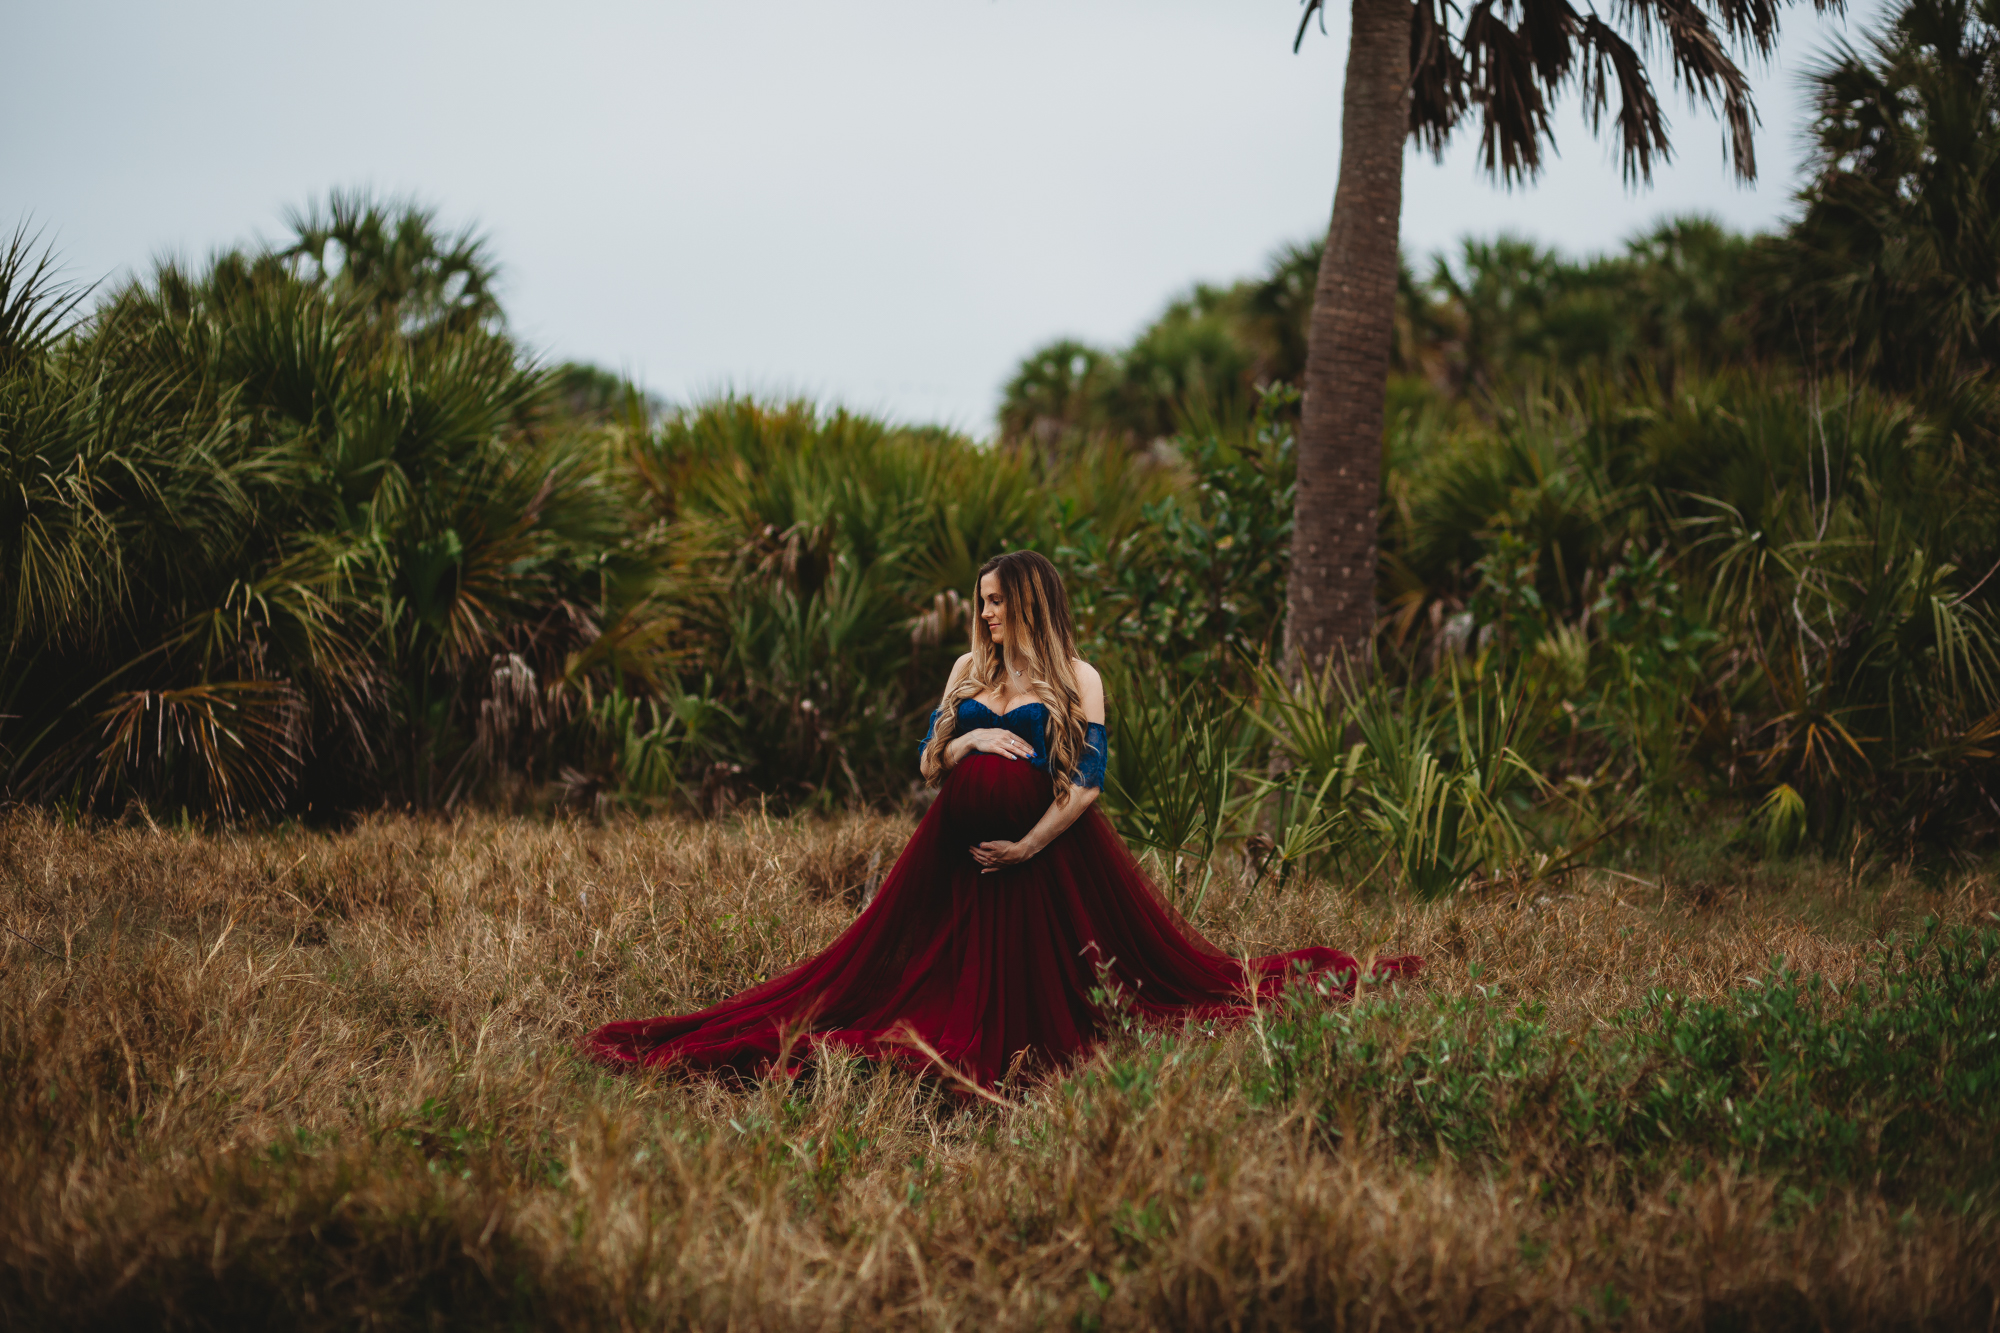 pregnancy photo session at the beach, tampa maternity photographer